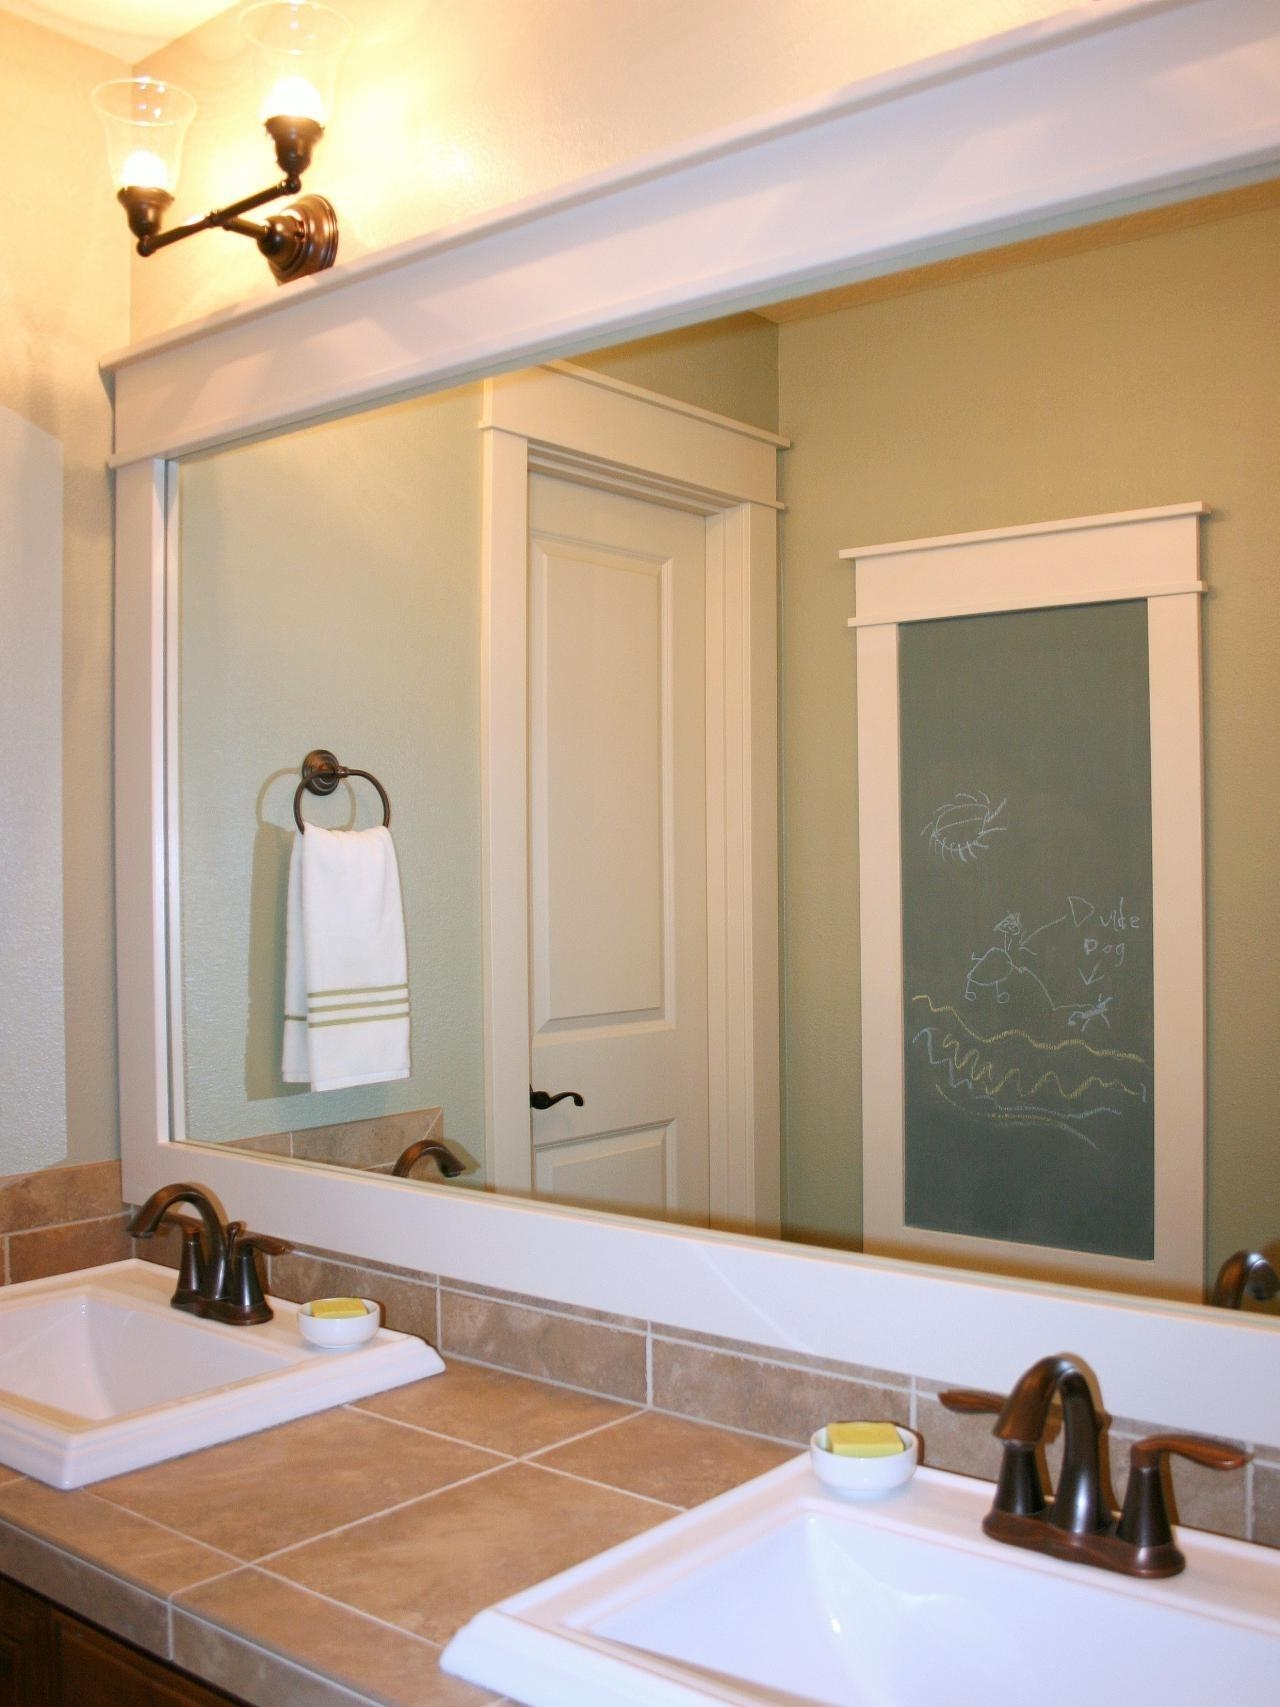 Bathroom: Elegant Bathroom Decor With Large Framed Bathroom Intended For Decorative Mirrors For Bathroom Vanity (View 15 of 20)